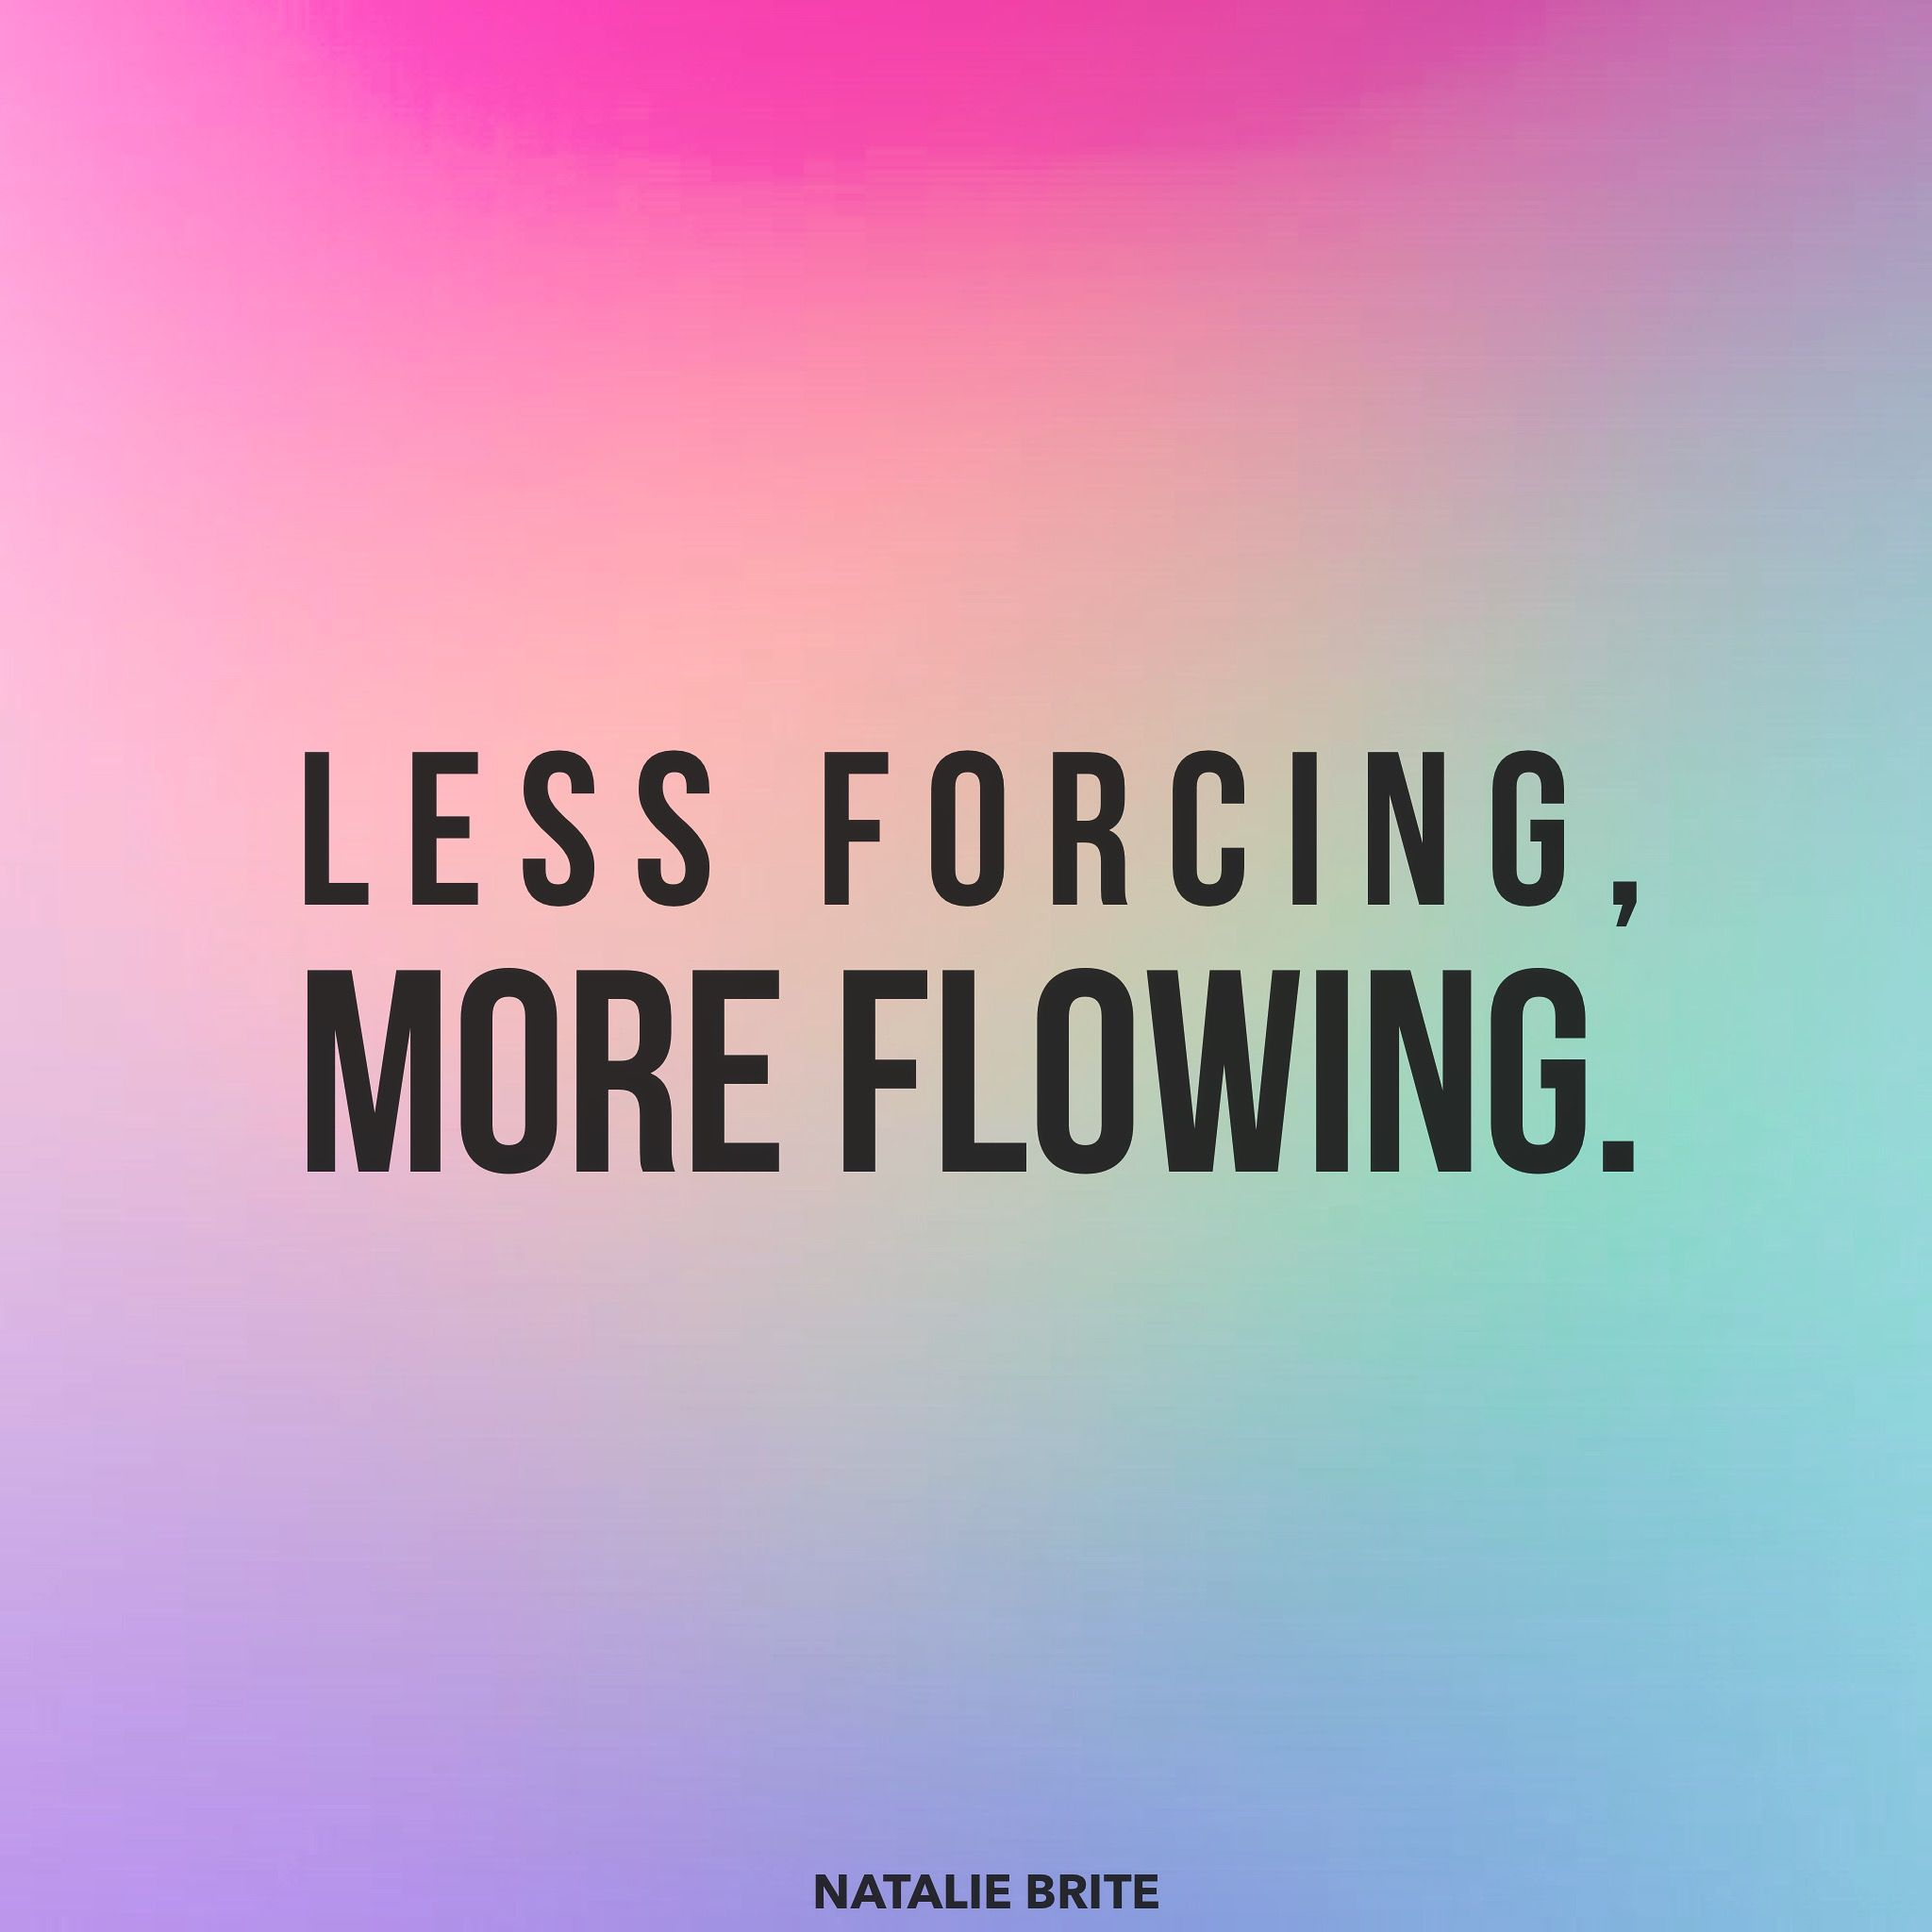 """Less forcing, more flowing."""